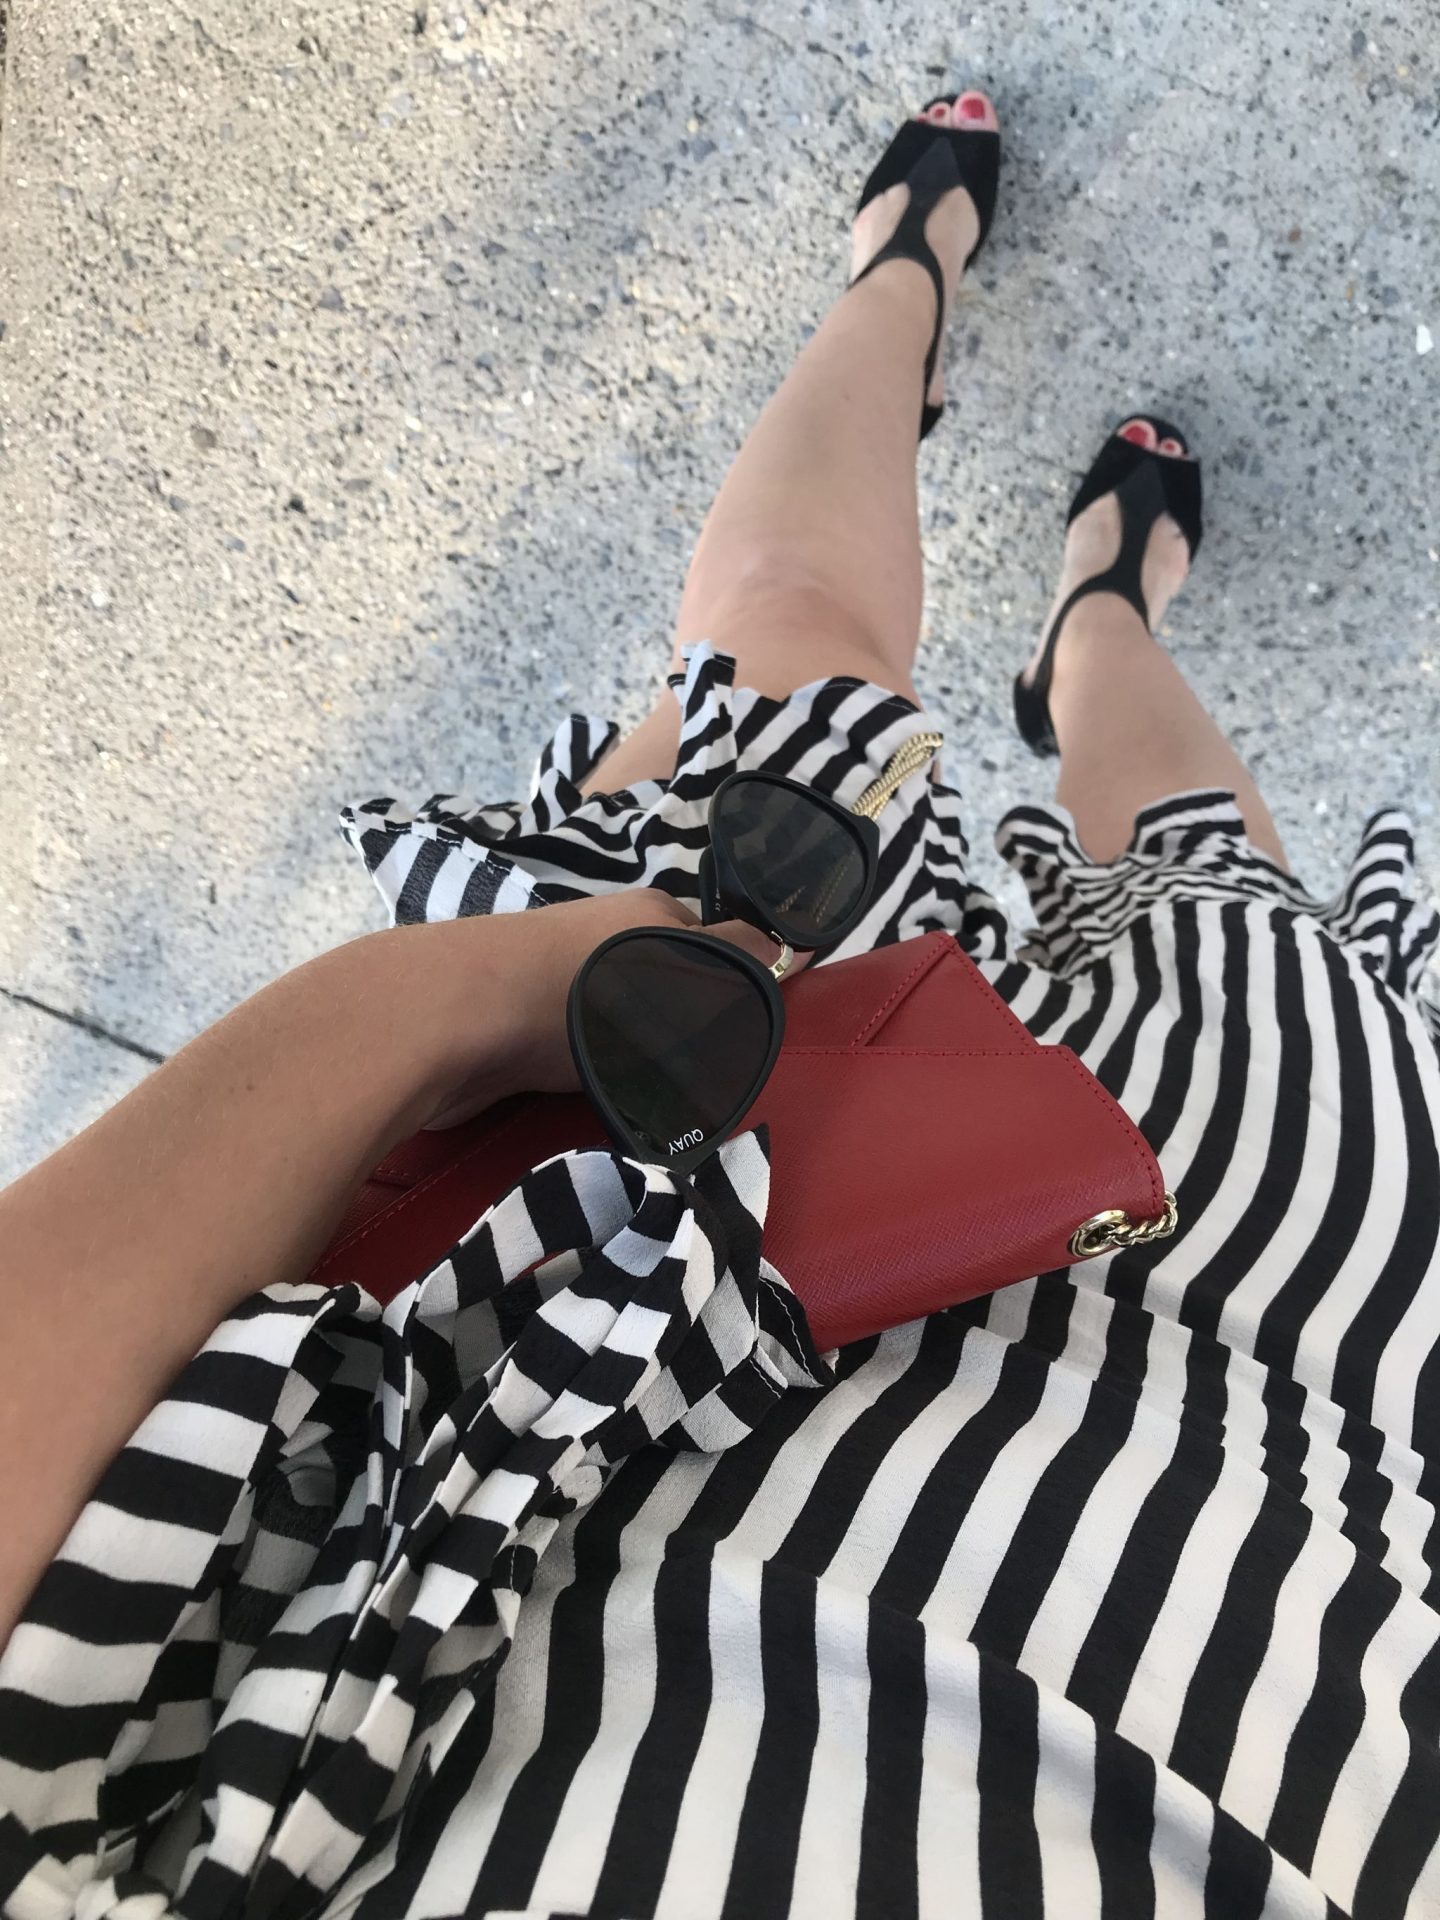 Stripes and Polka Dots Outfit - Day 1 of the EasilyDressed Challenge Part II